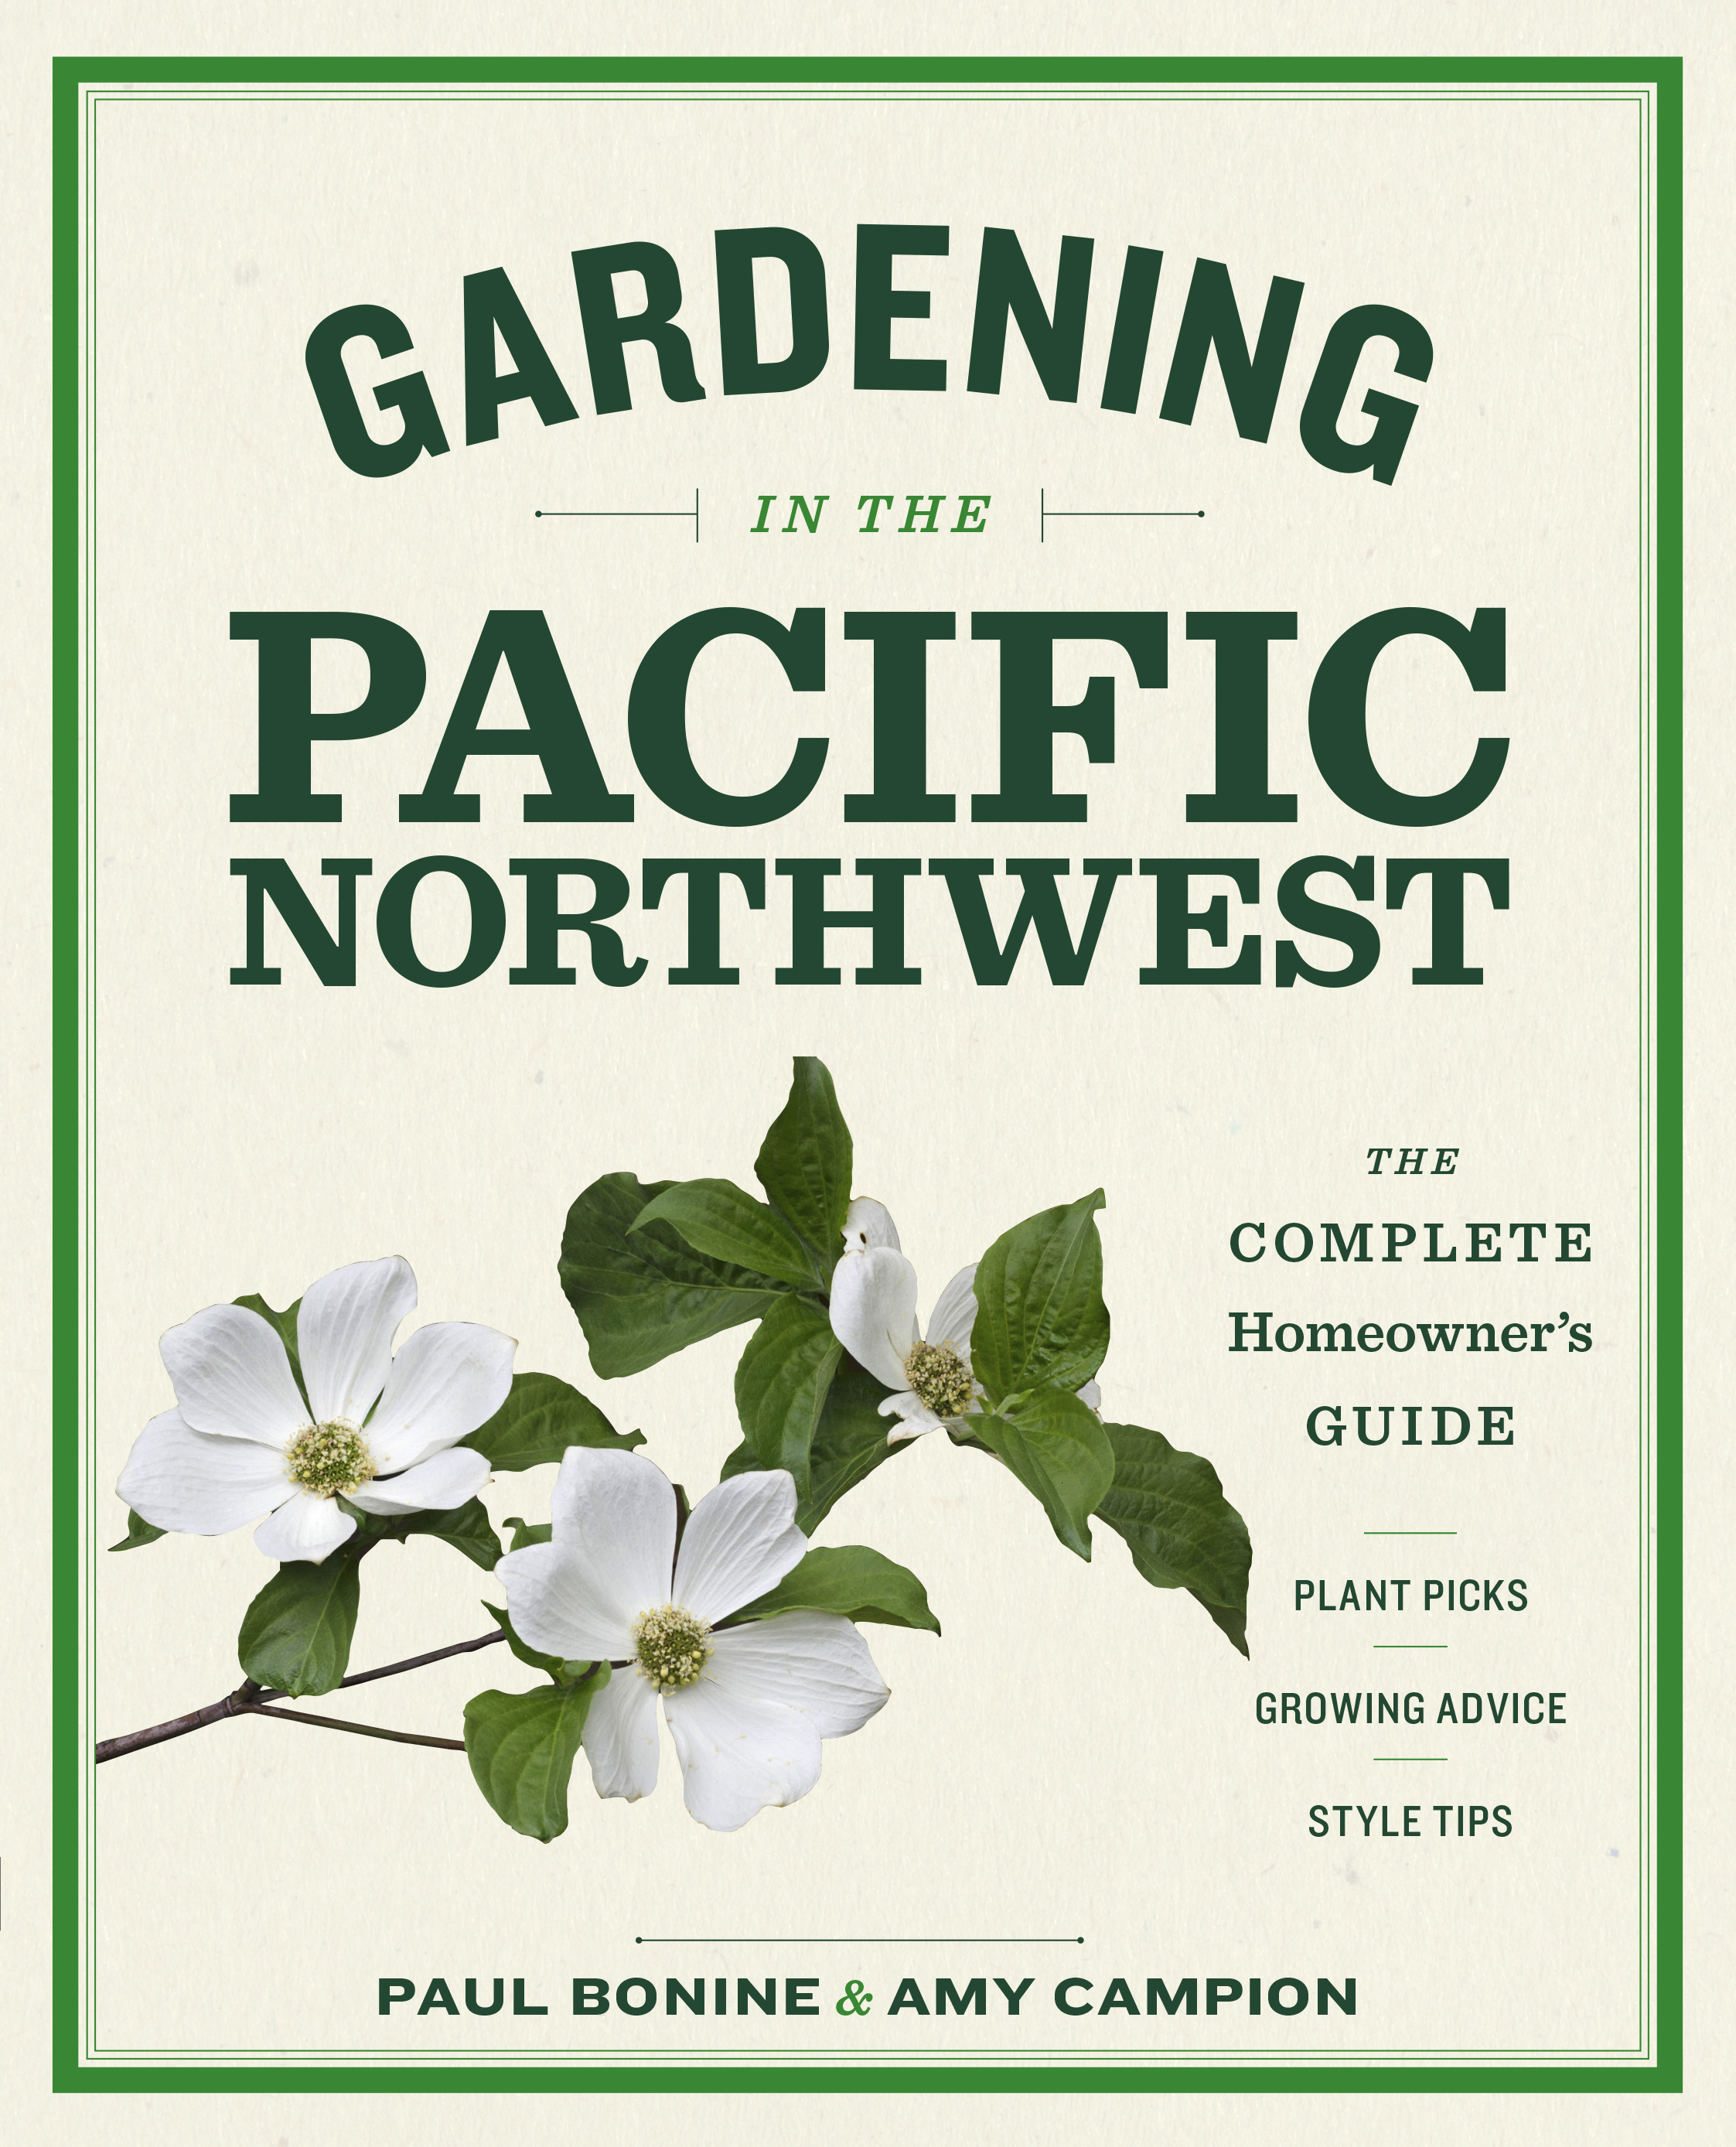 Gardening in the Pacific Northwest The Complete Homeowner's Guide